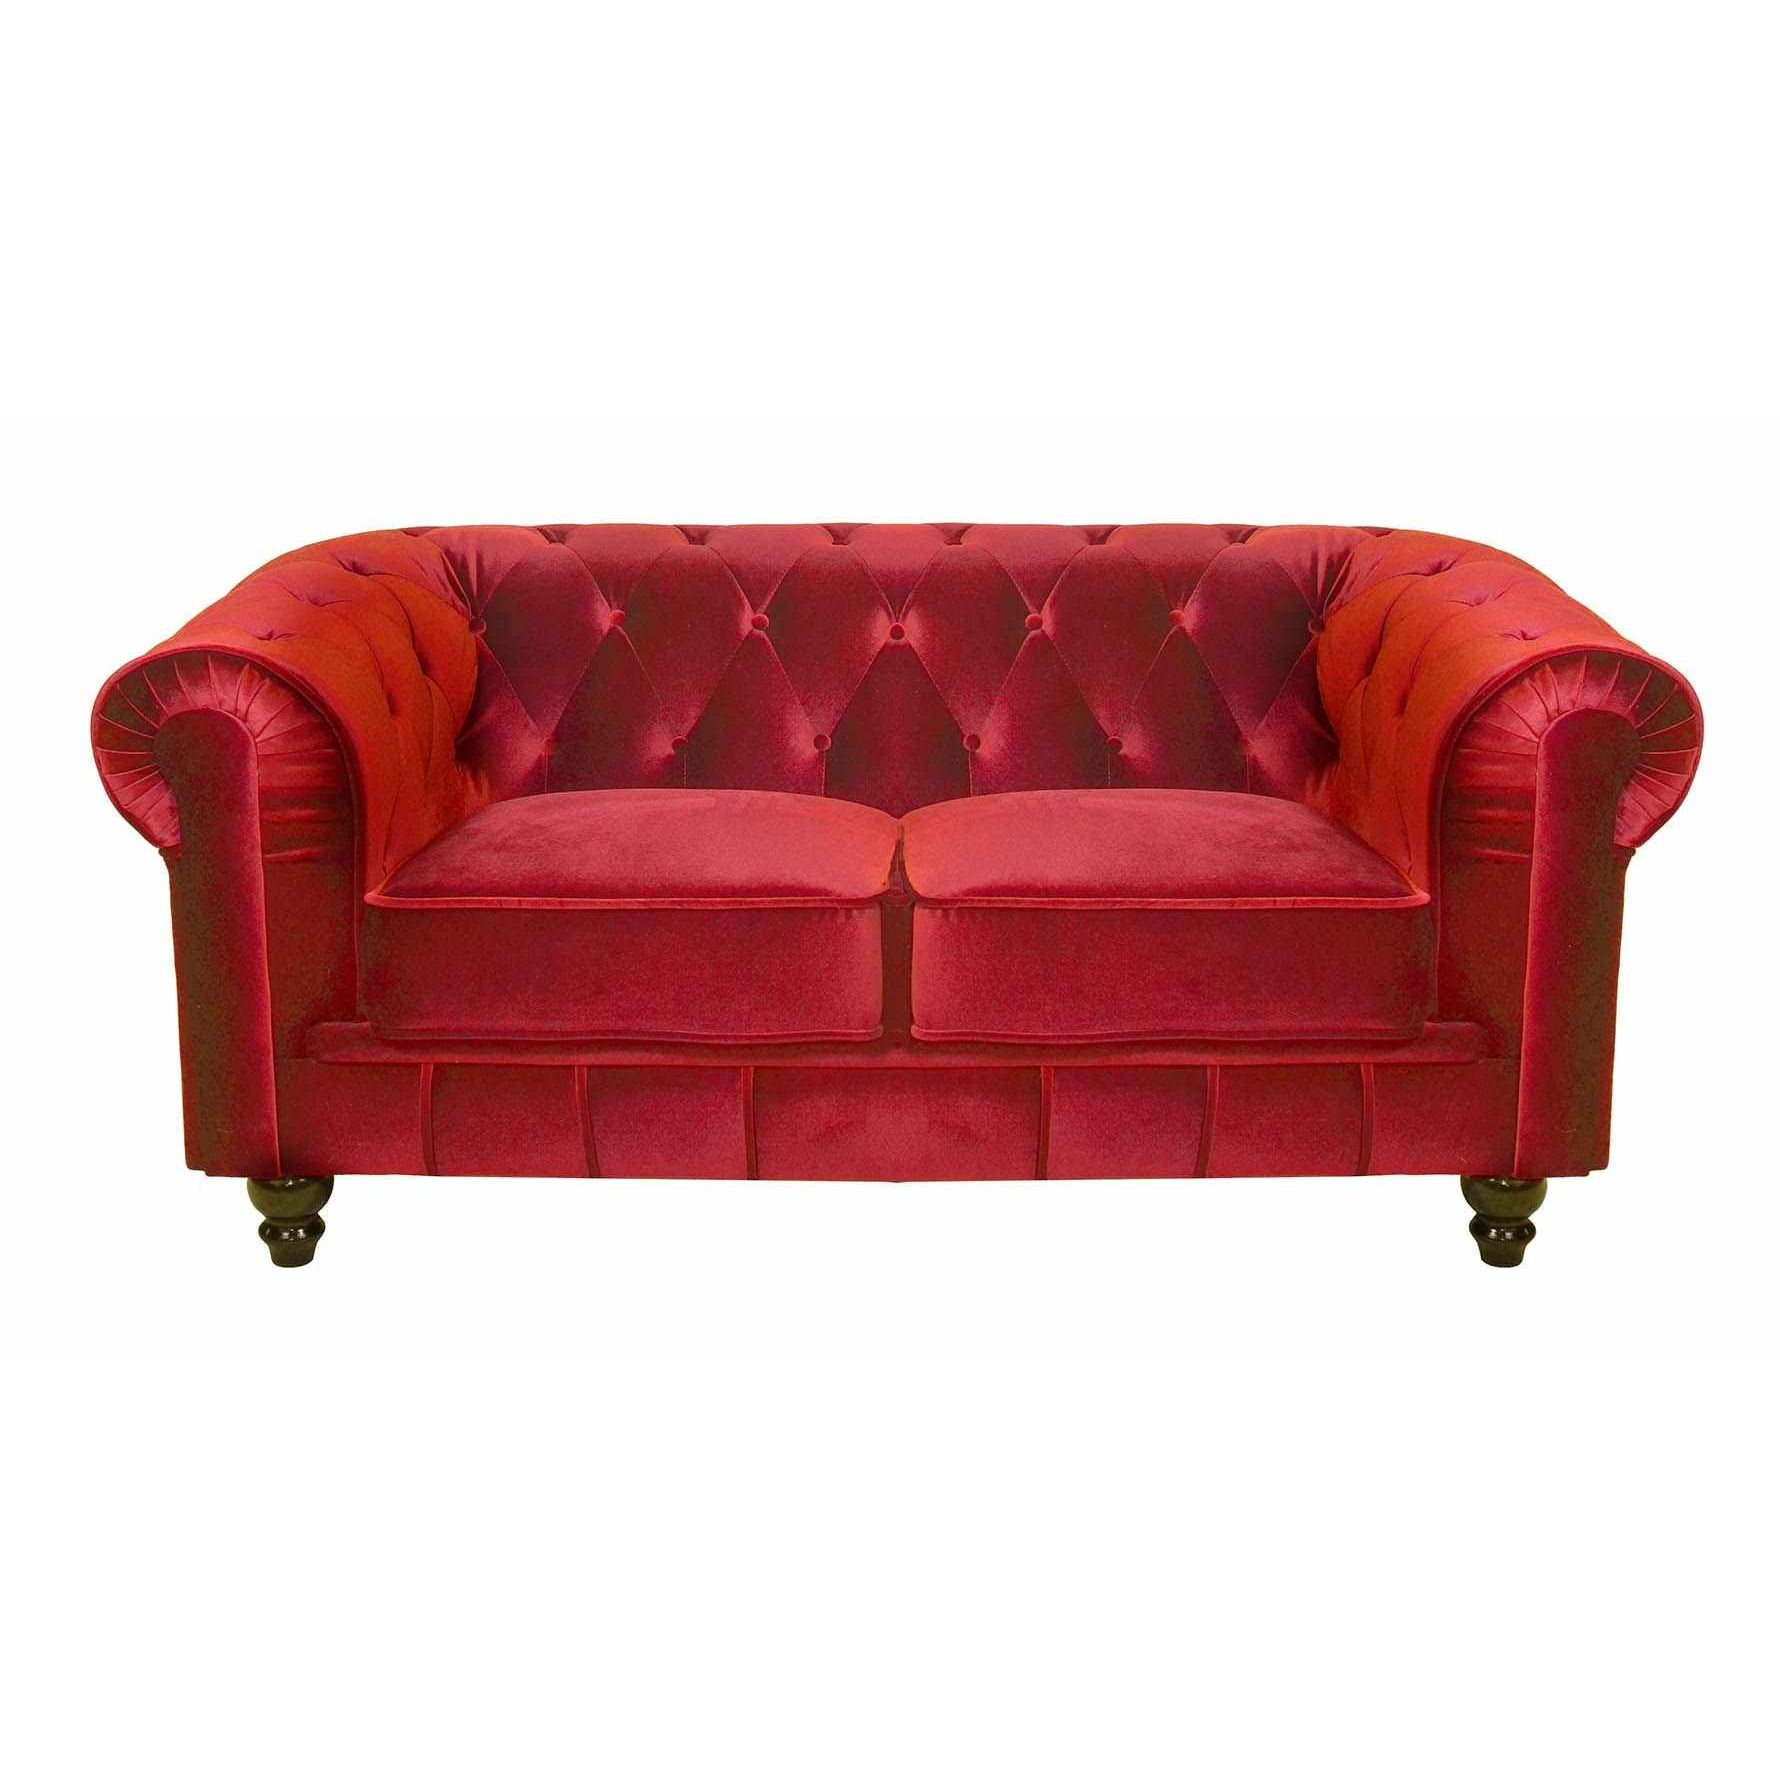 deco in paris canape 2 places velours rouge chesterfield can chester 2p velours rouge. Black Bedroom Furniture Sets. Home Design Ideas